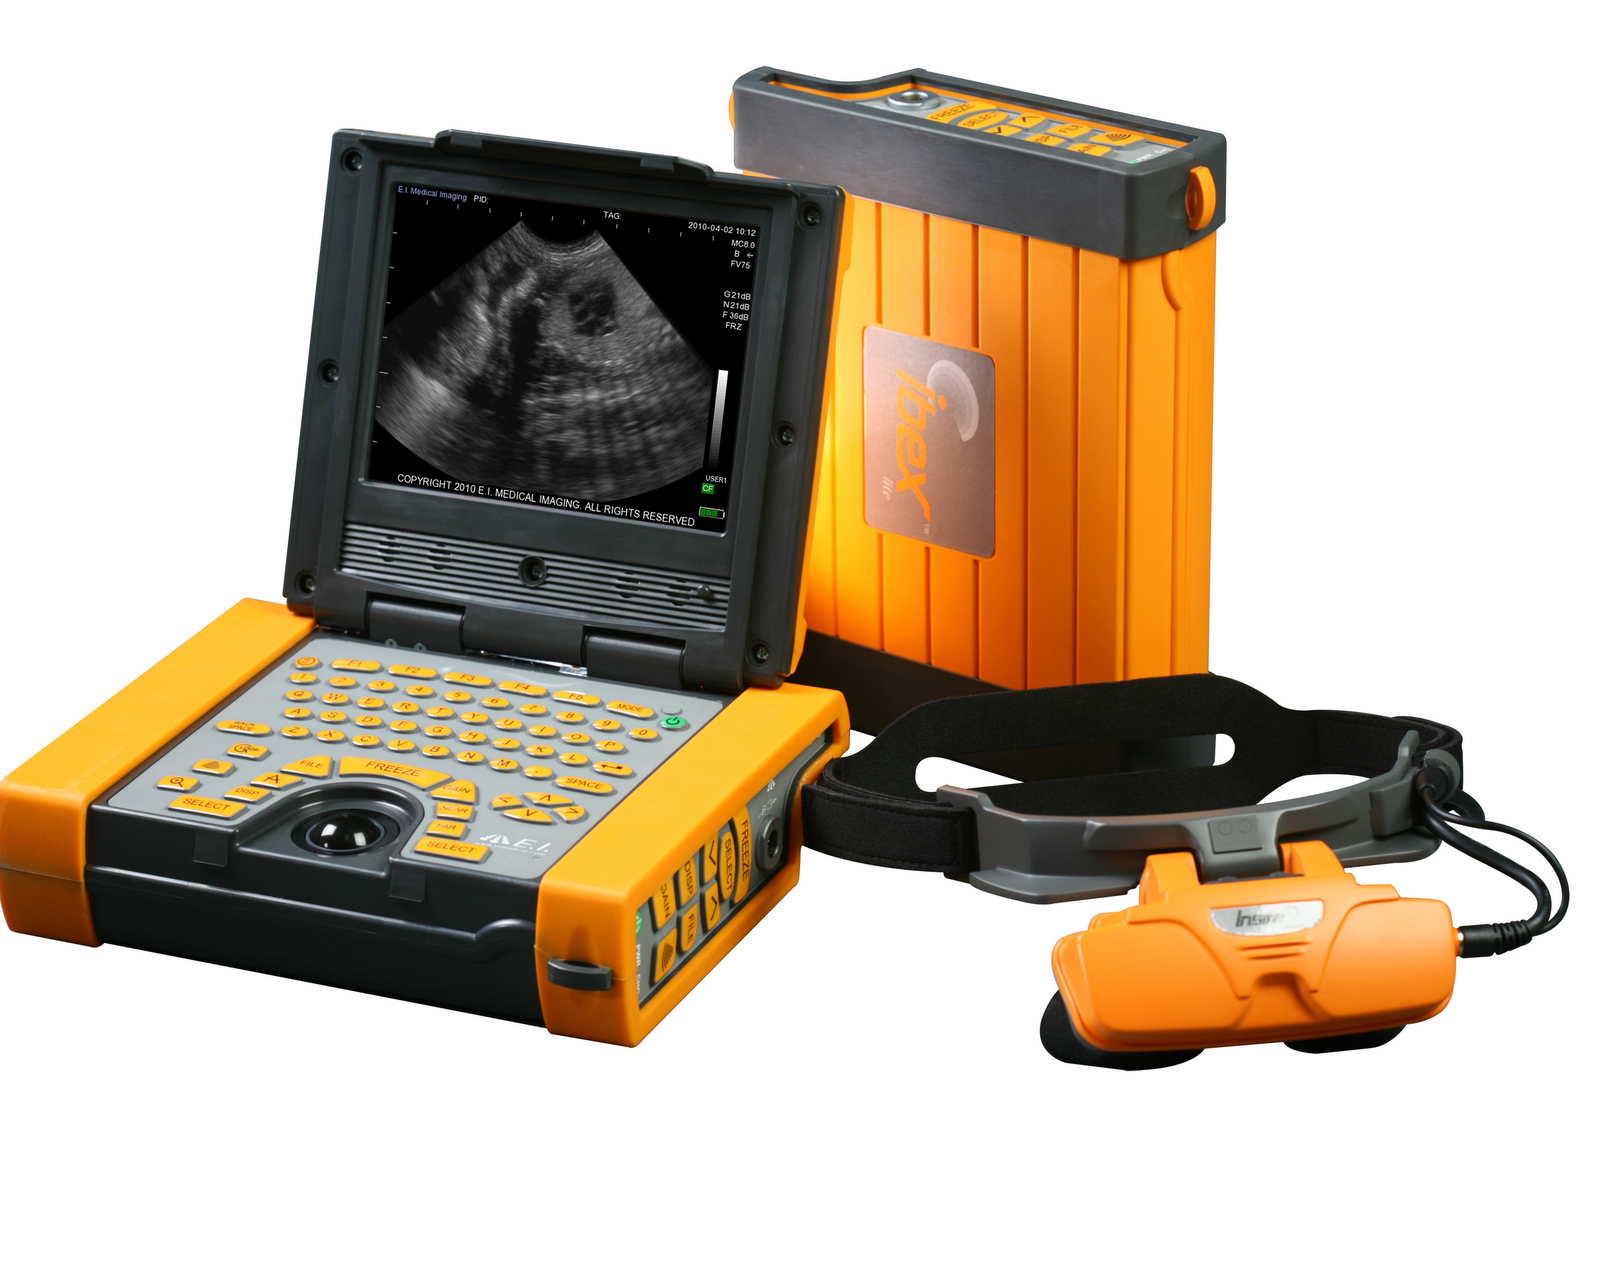 Ibex portable ultrasound, water proof ultrasound, rugged sonogram